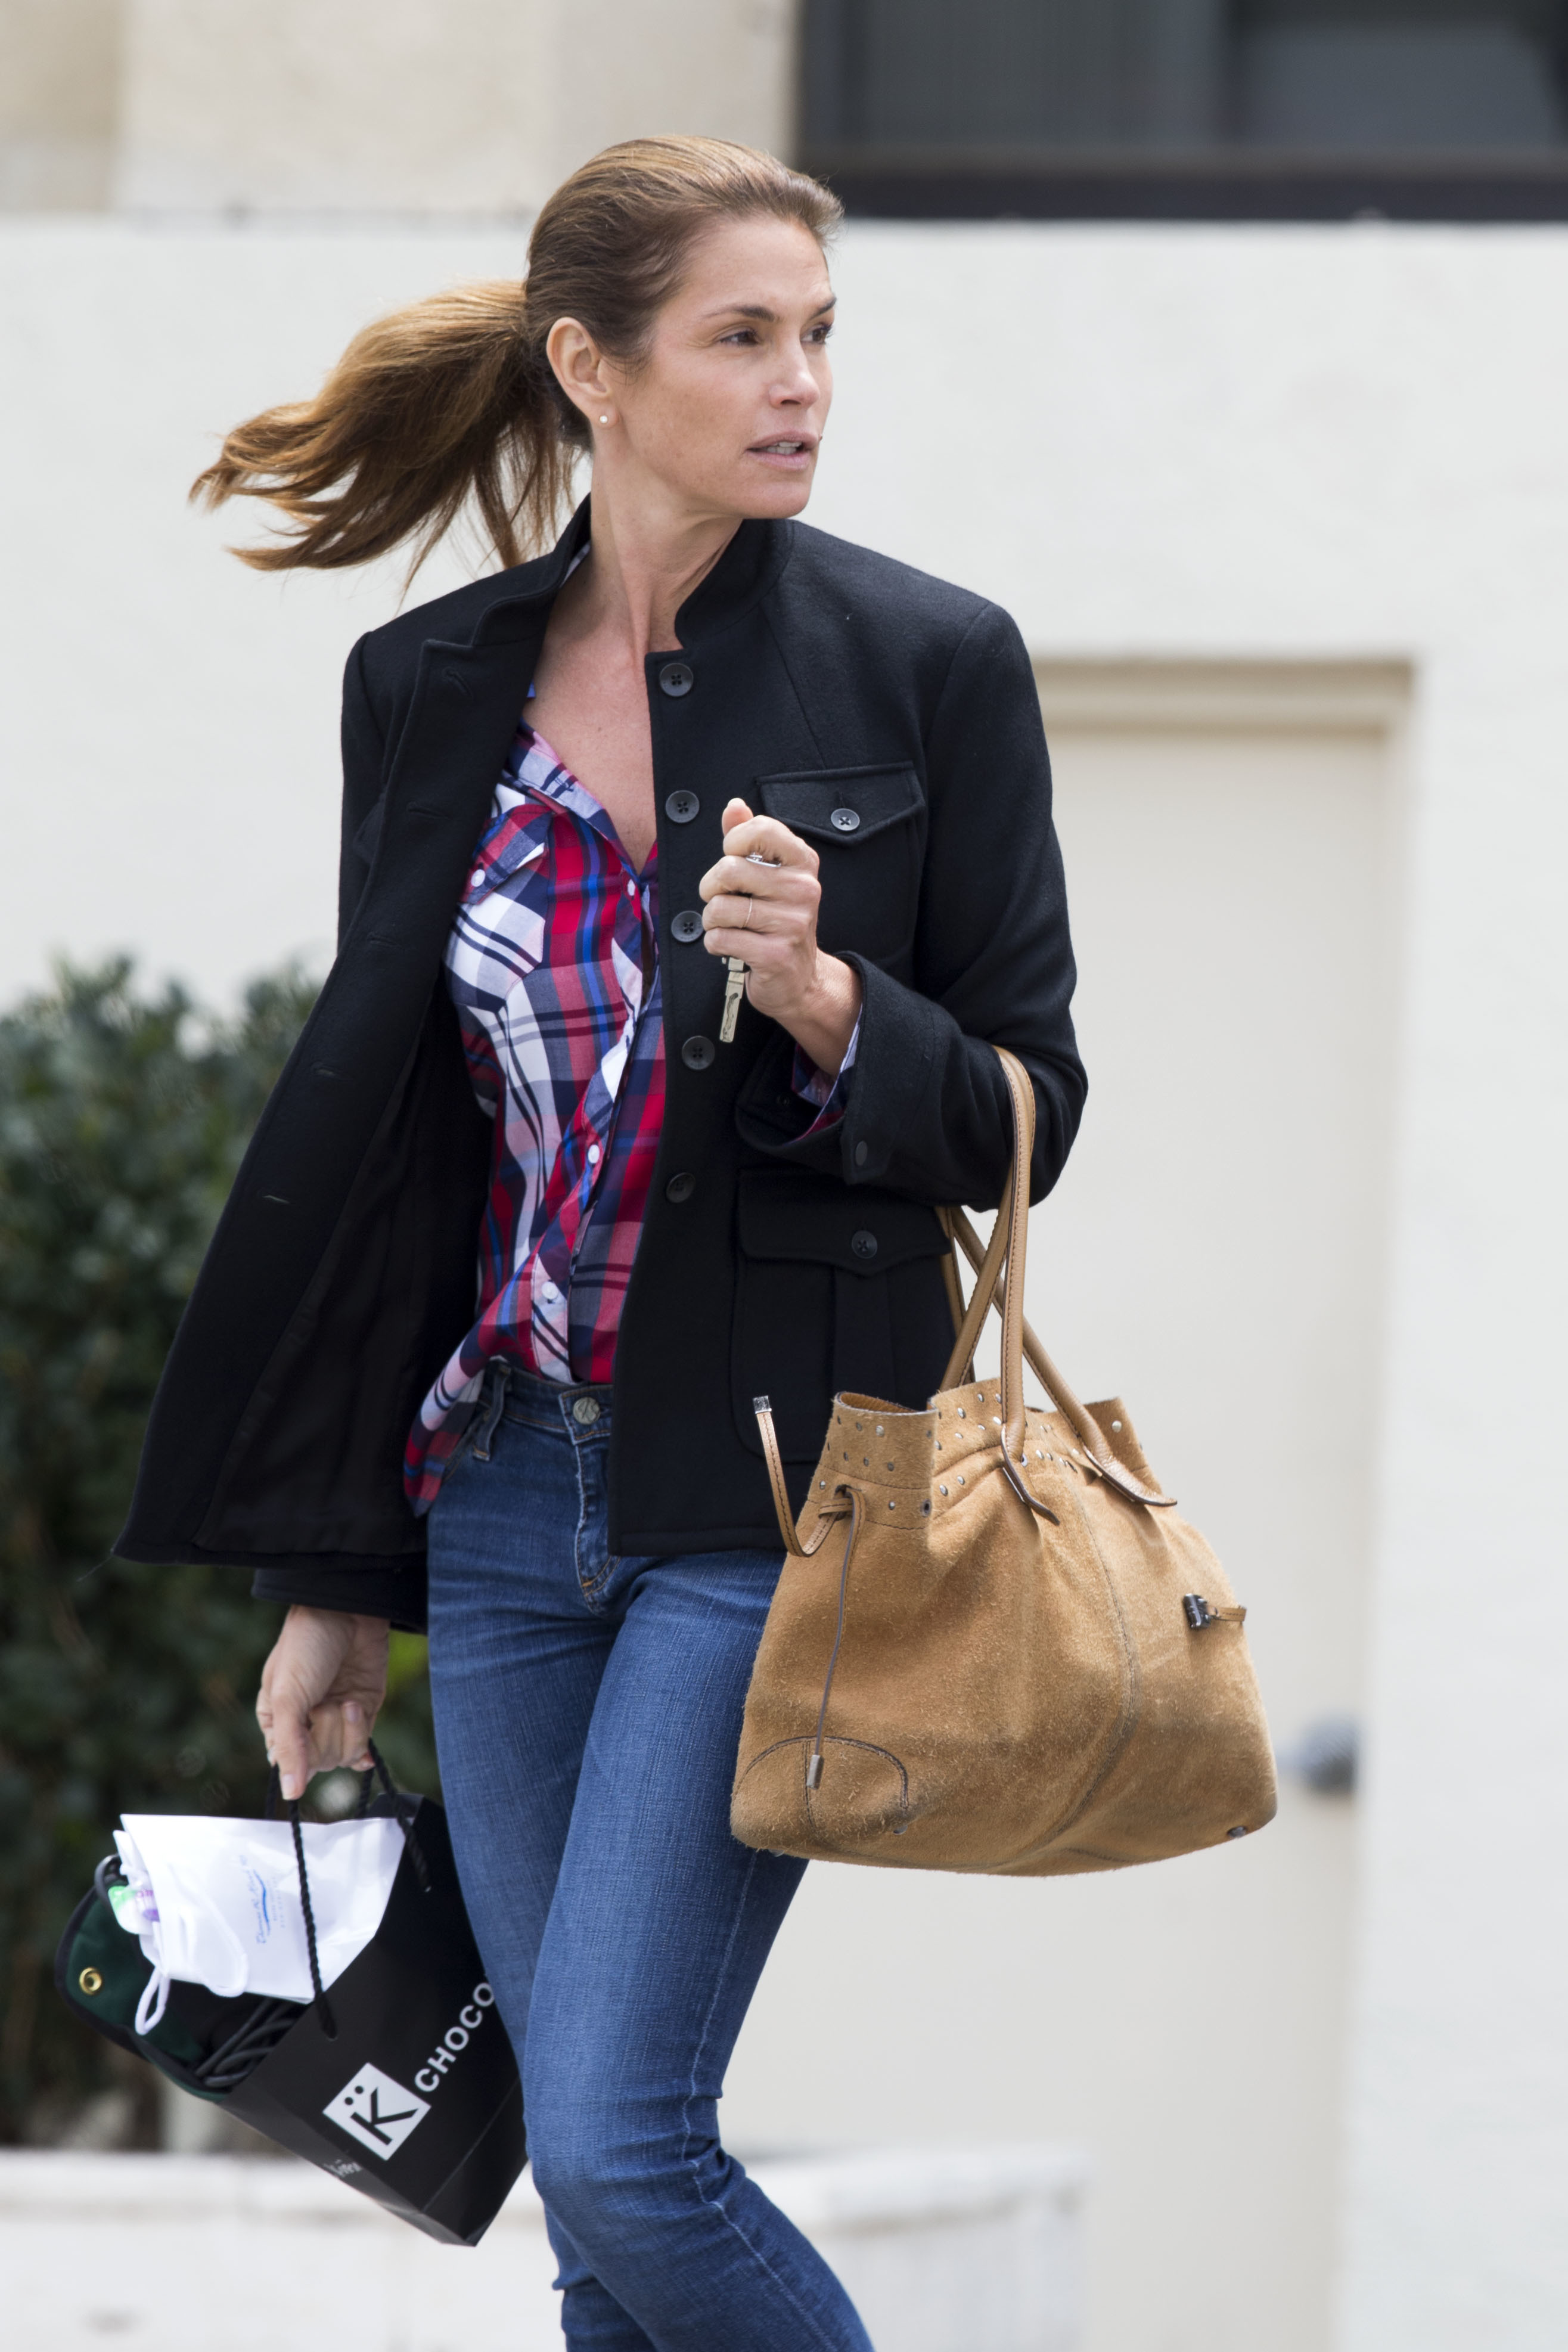 Cindy Crawford looks stunning without makeup